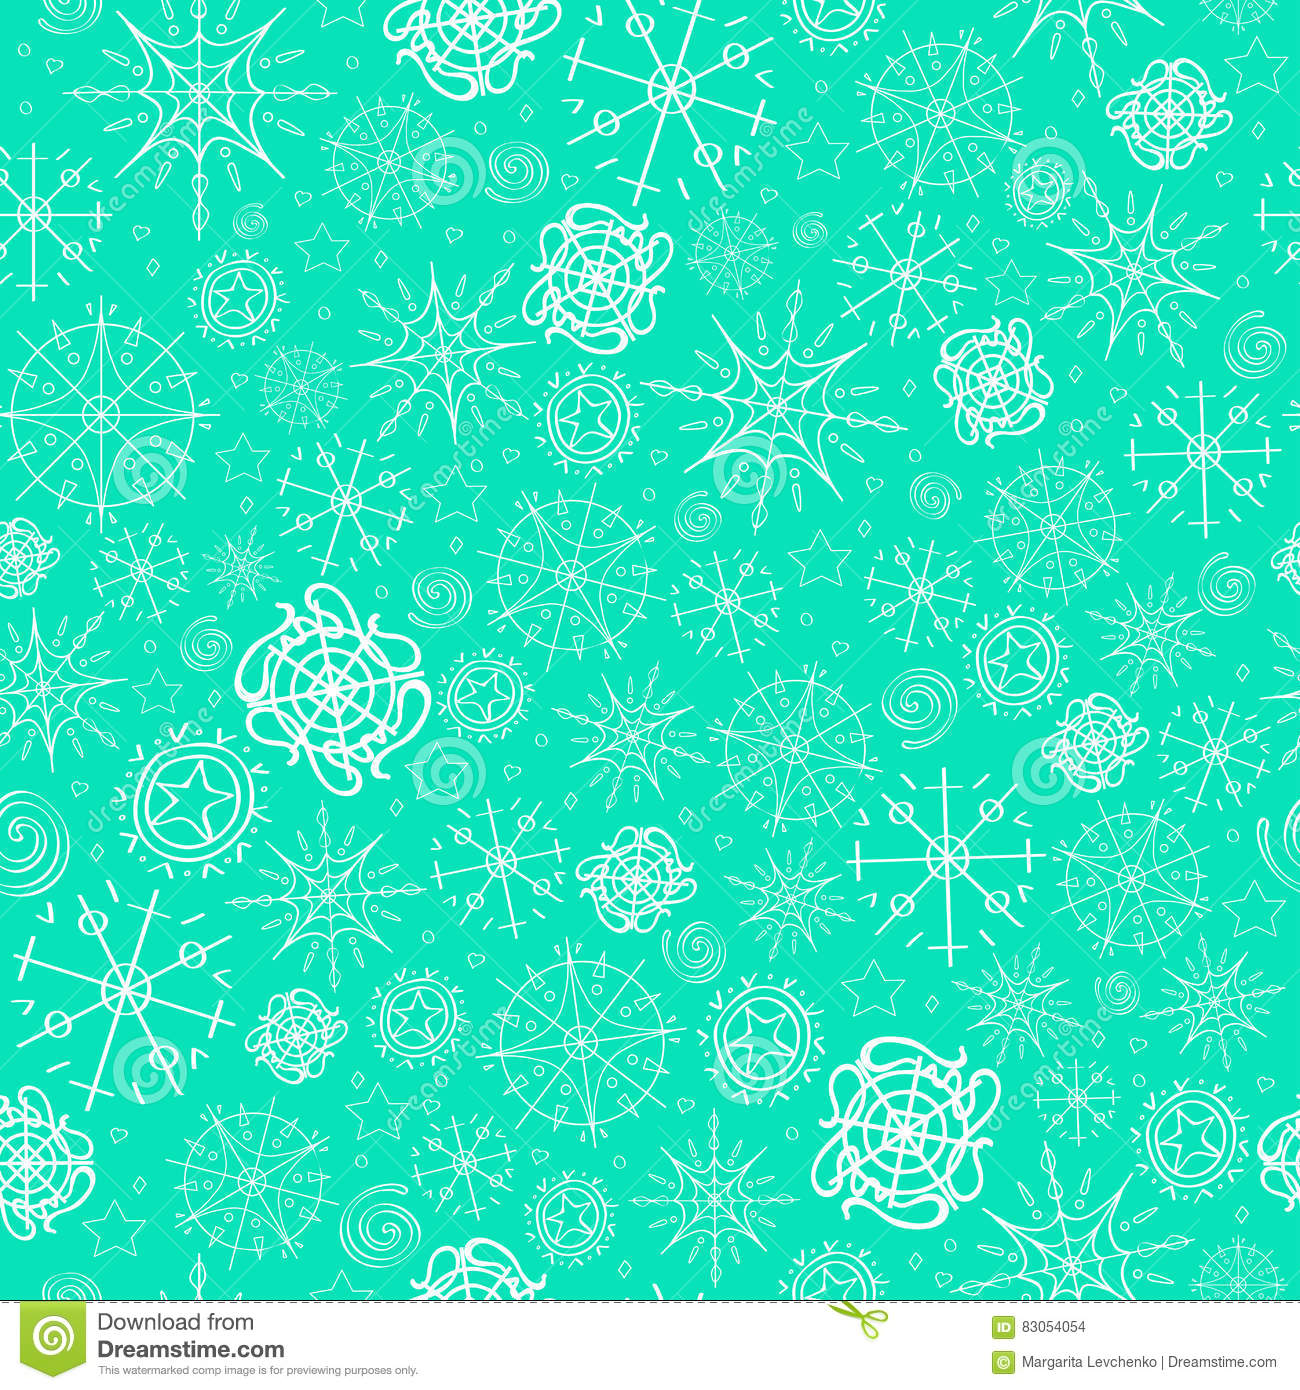 download illustration vector pattern image of snowflakes winter mint blue background for - Mint Christmas Cards